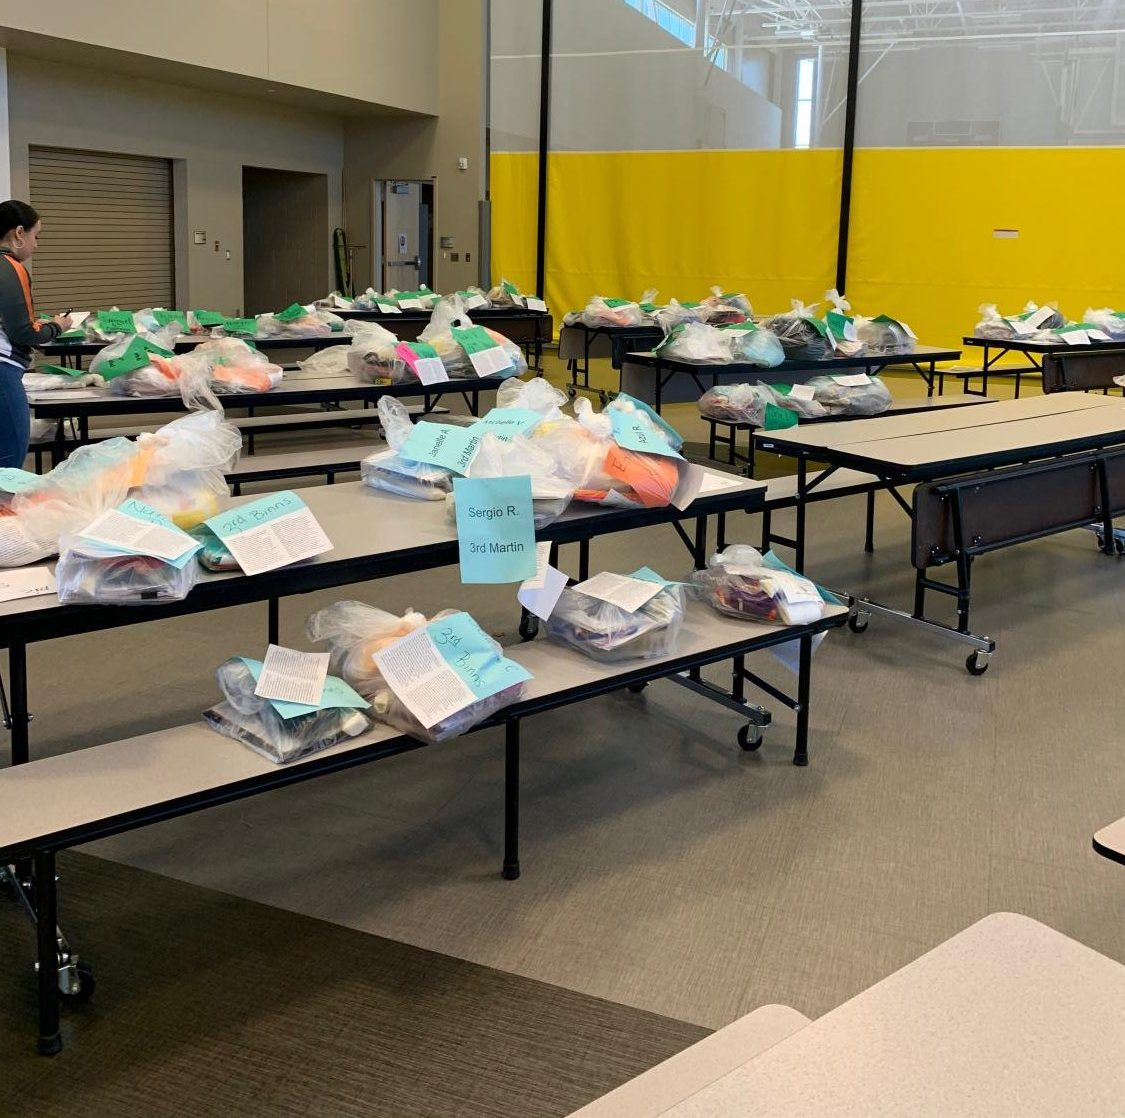 Prairie+View+Elementary+school+has+had+numerous+pickups+for+the+students+to+get+their+belongings+and+paperwork%2Ftechnology+needed+to+be+successful+at+home.+The+items+were+placed+in+clear+sacks+with+color+coordinated++name+tags+for+the+different+grades.